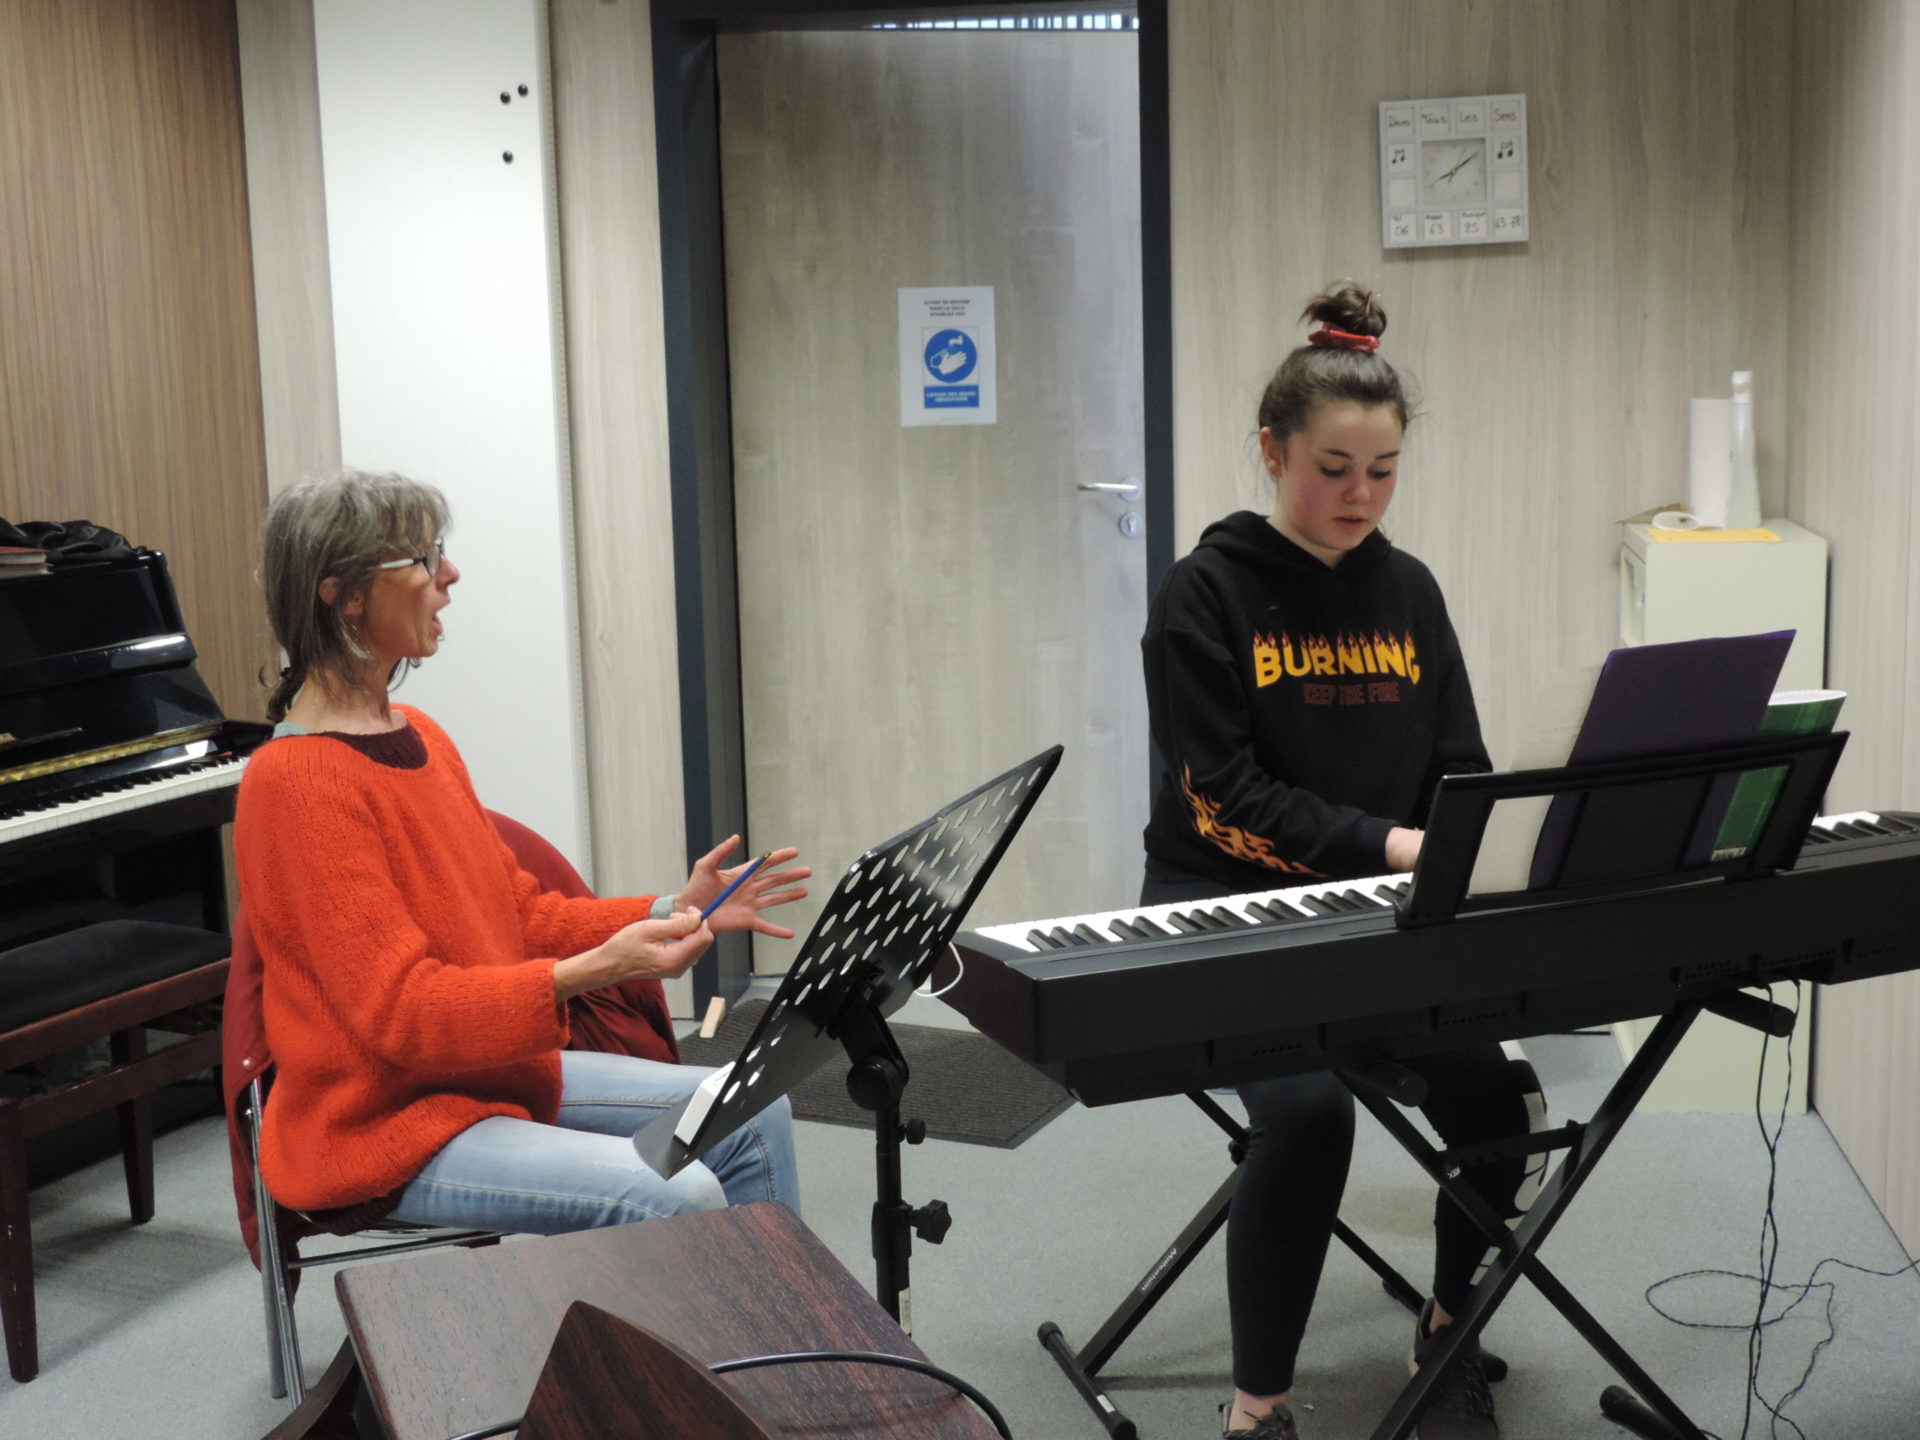 les-cours-proposes-cours-individuel-piano-dtls